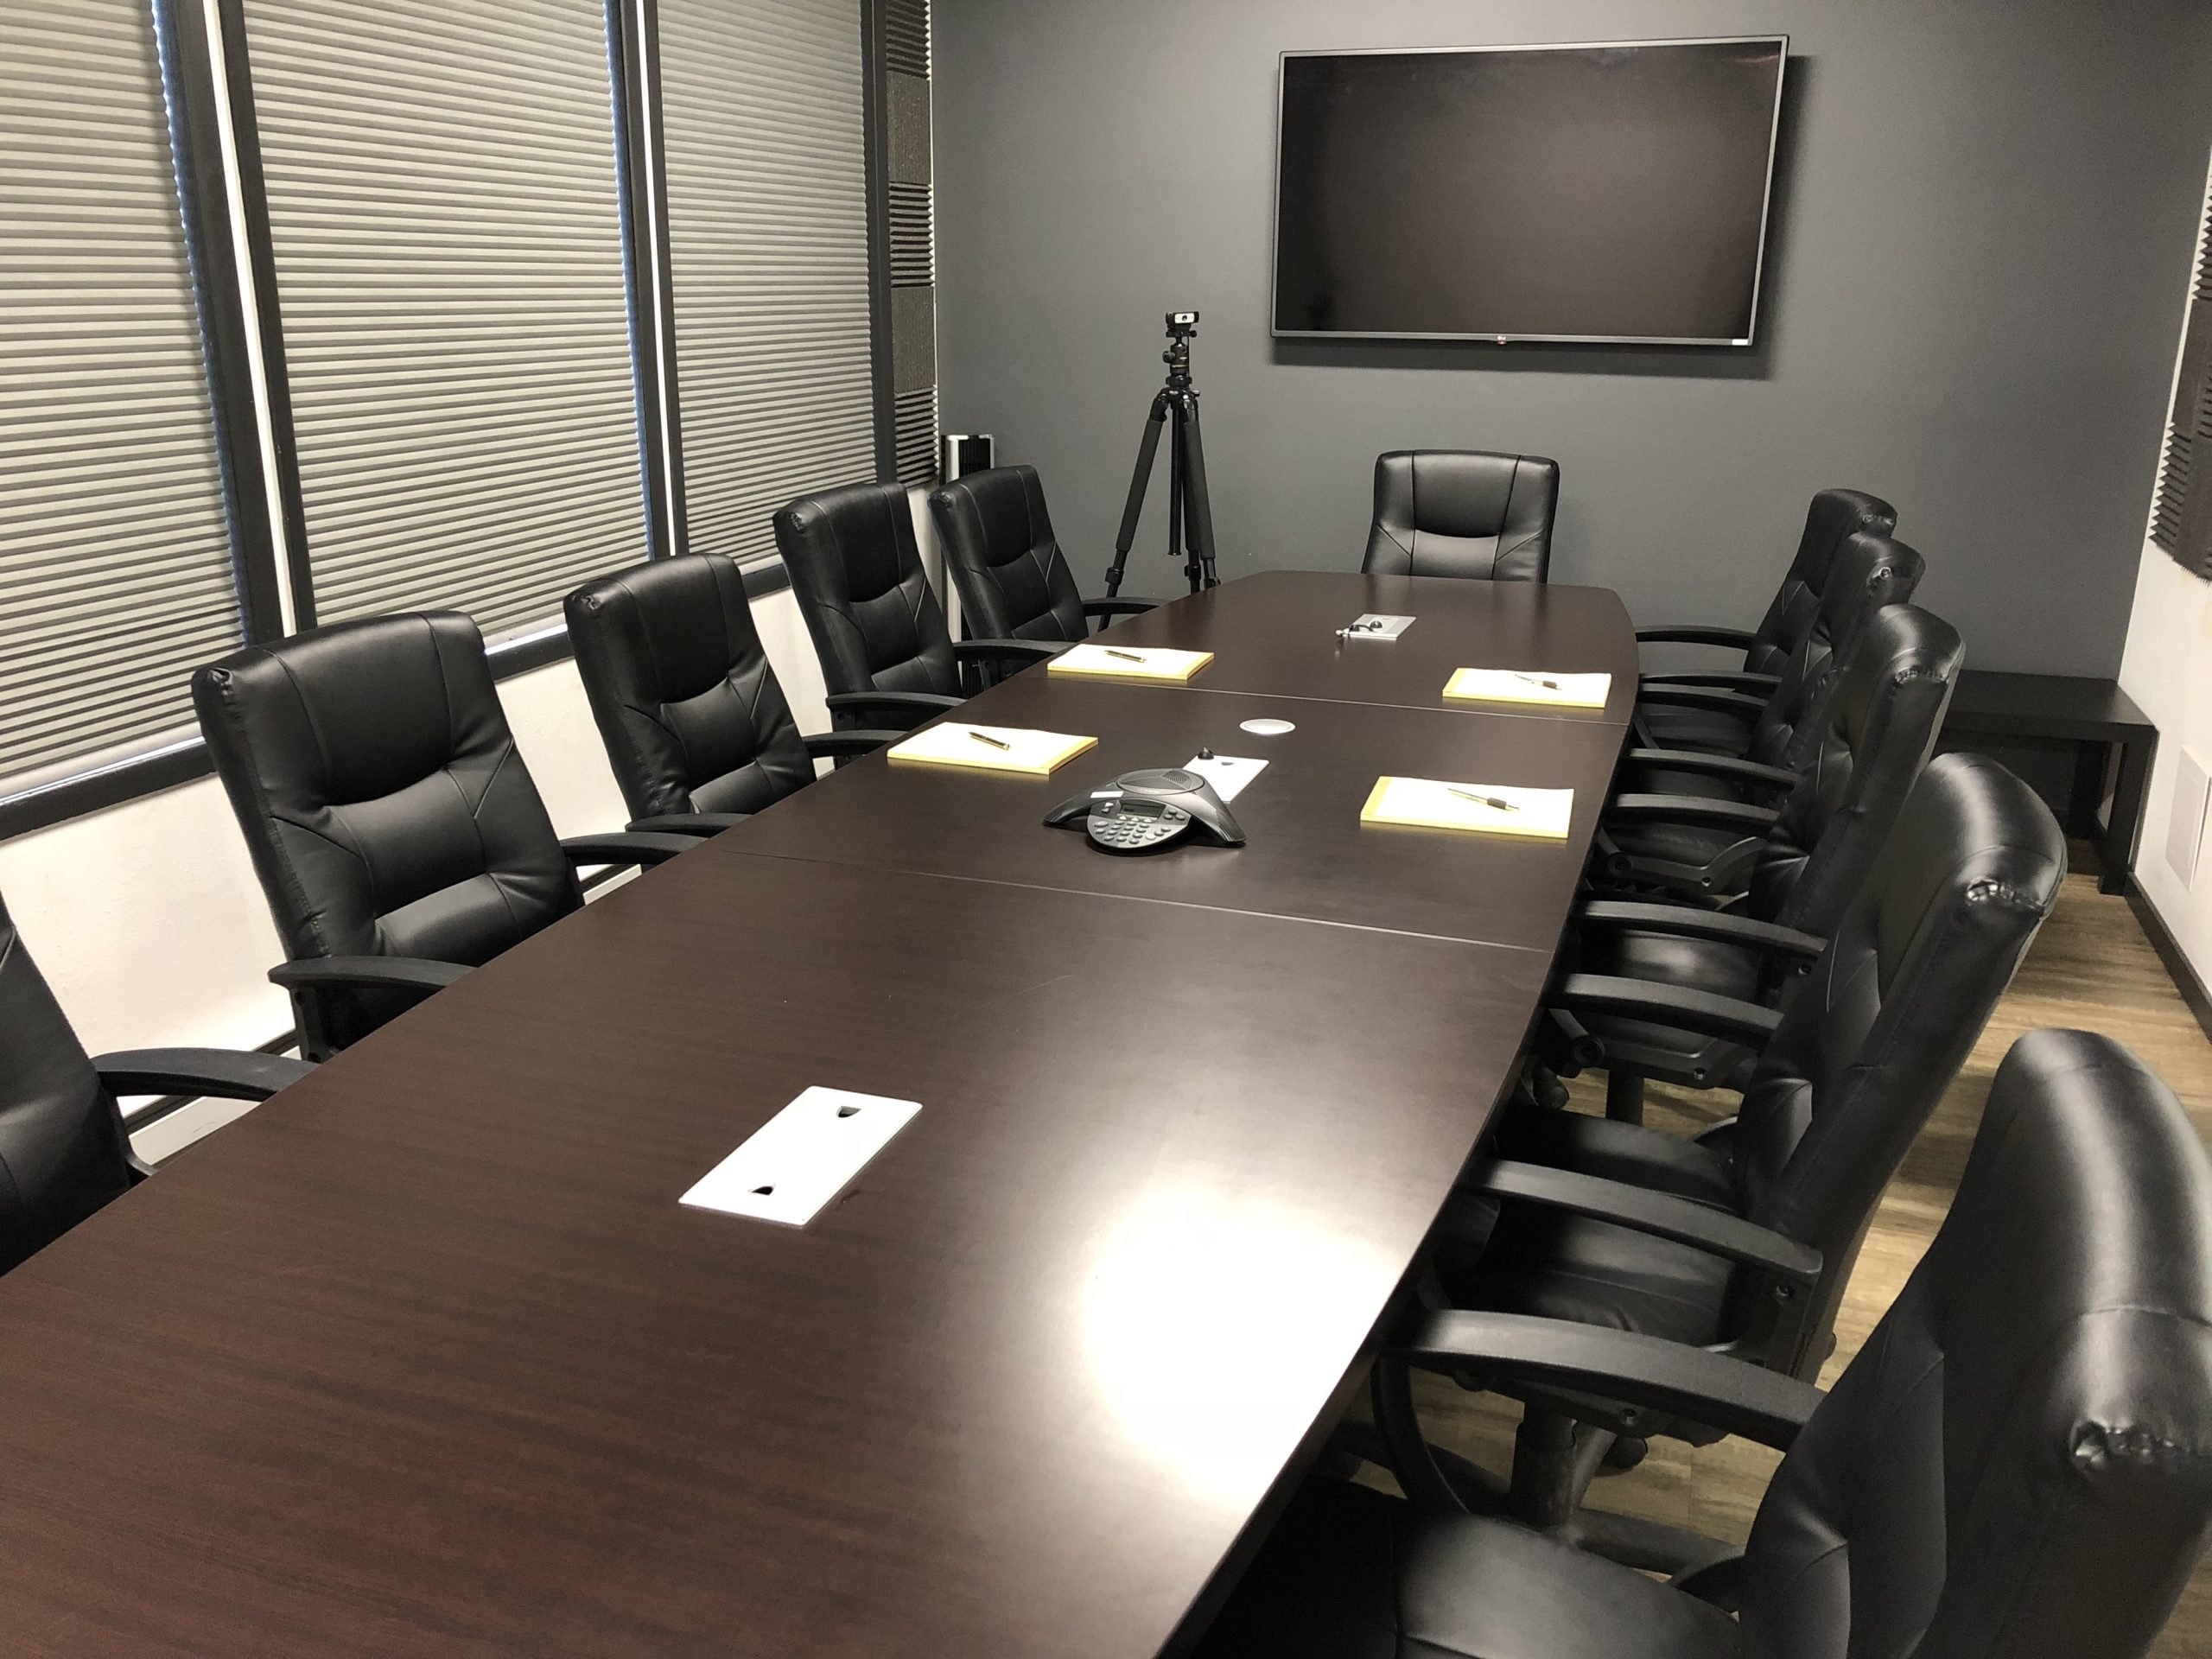 large-conference-room-vacant-photo